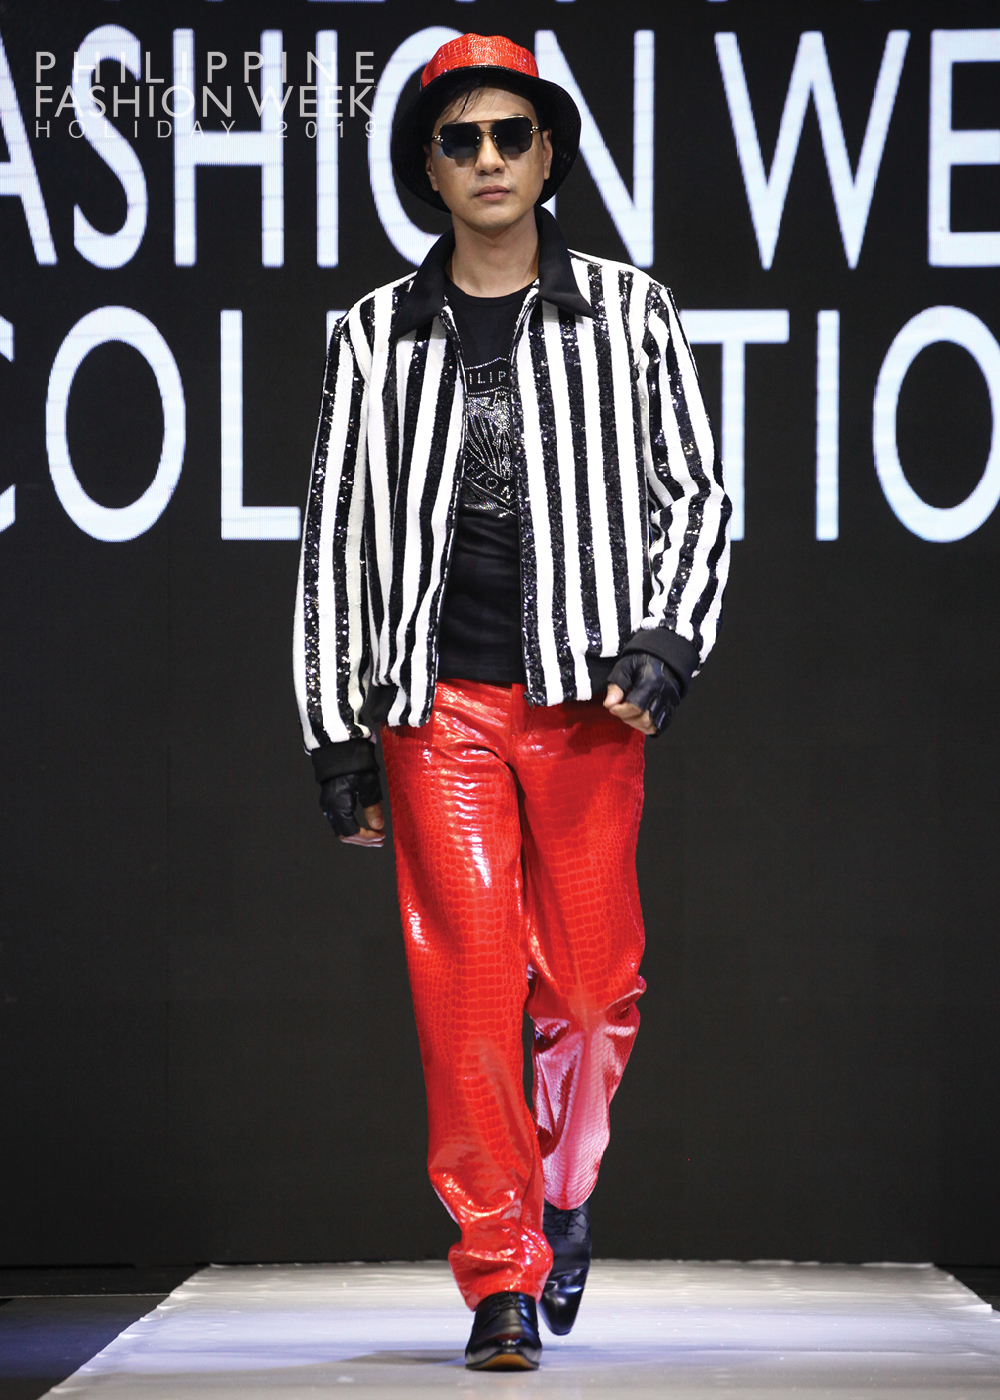 PhFW_collection show16.jpg